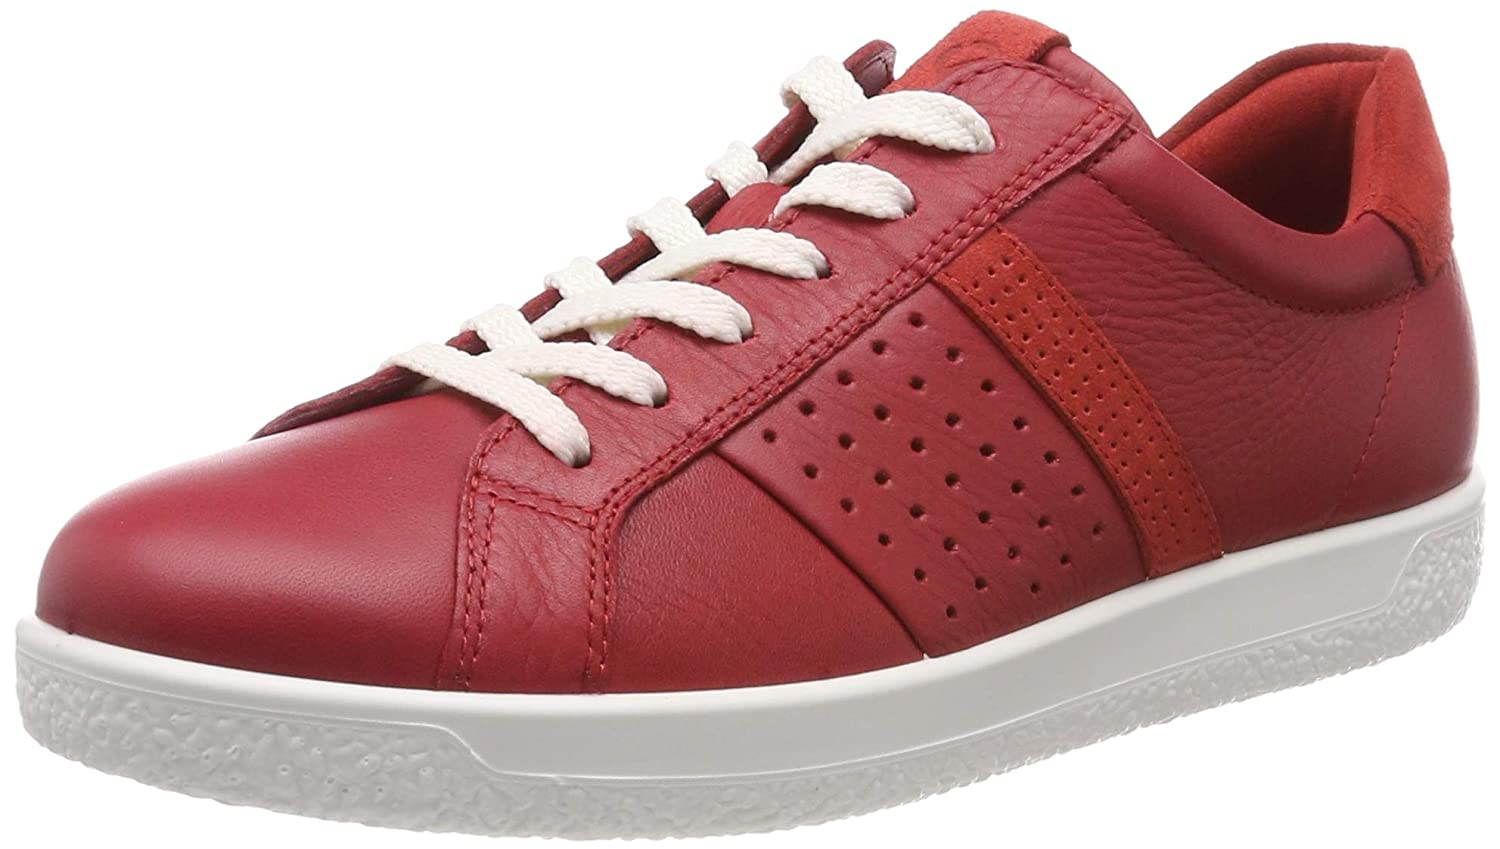 a3dfa97043 Amazon.com | ECCO Women's Soft 1 Ladies Low-Top Sneakers, (Chili Red ...